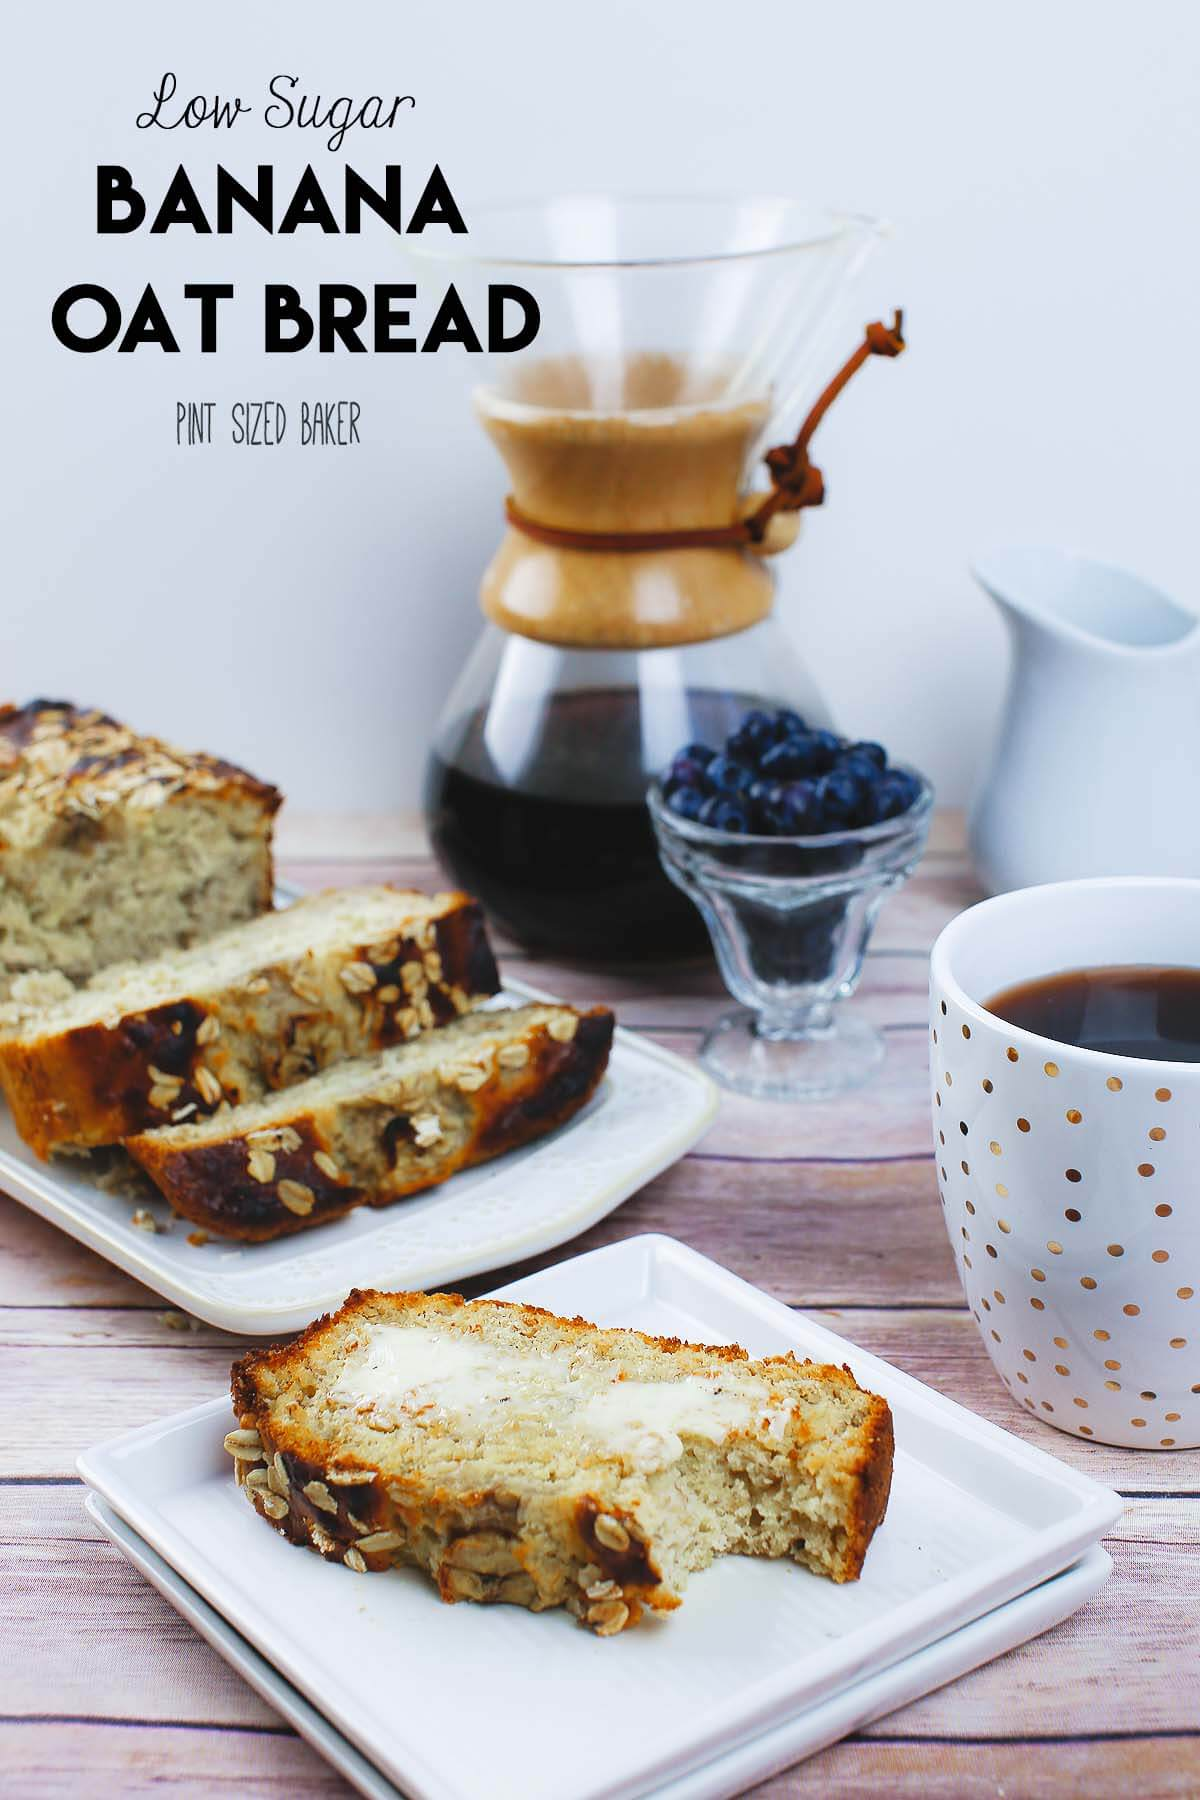 A delicious Low Sugar Banana Oat Bread Recipe that is perfectly moist, freezes well, and is perfect for breakfast with a strong cup of coffee.